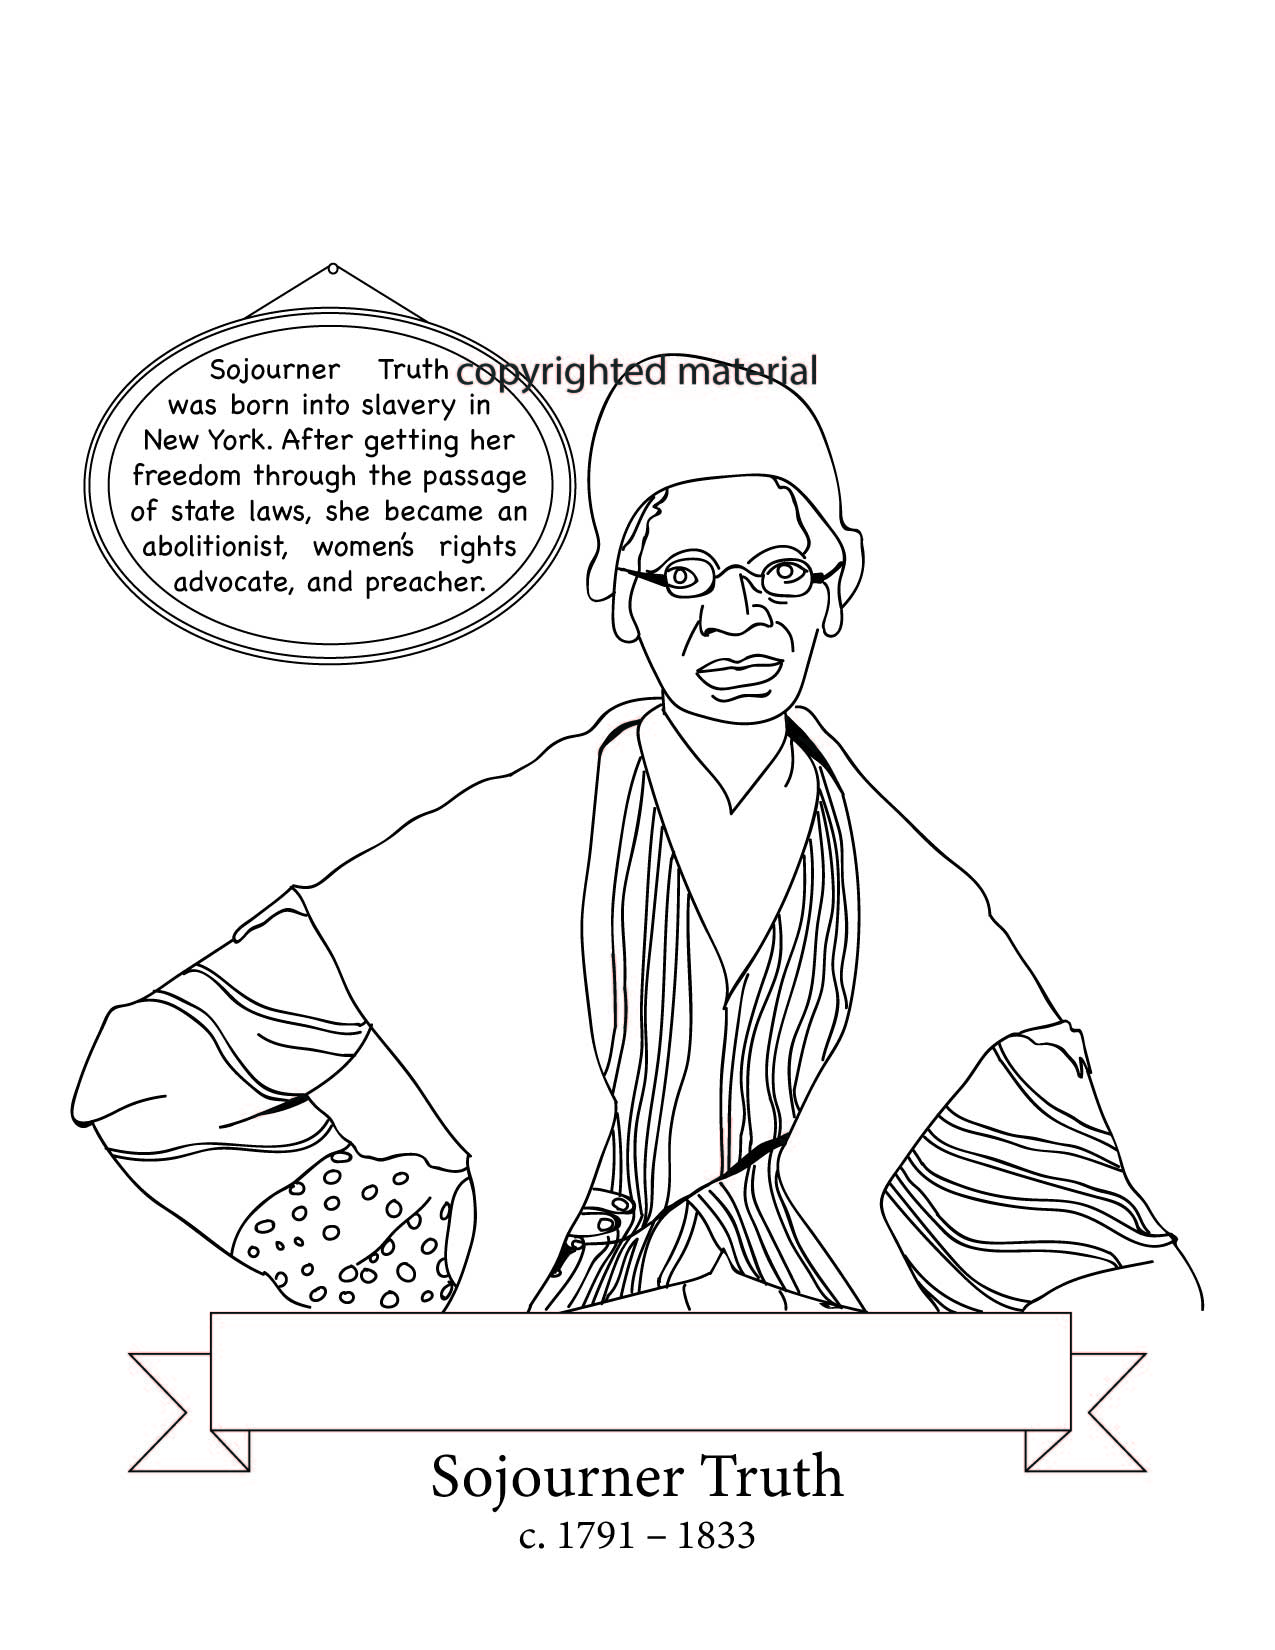 USA-Printables: Booker T Washington Coloring Pages - Famous ... | 1650x1275